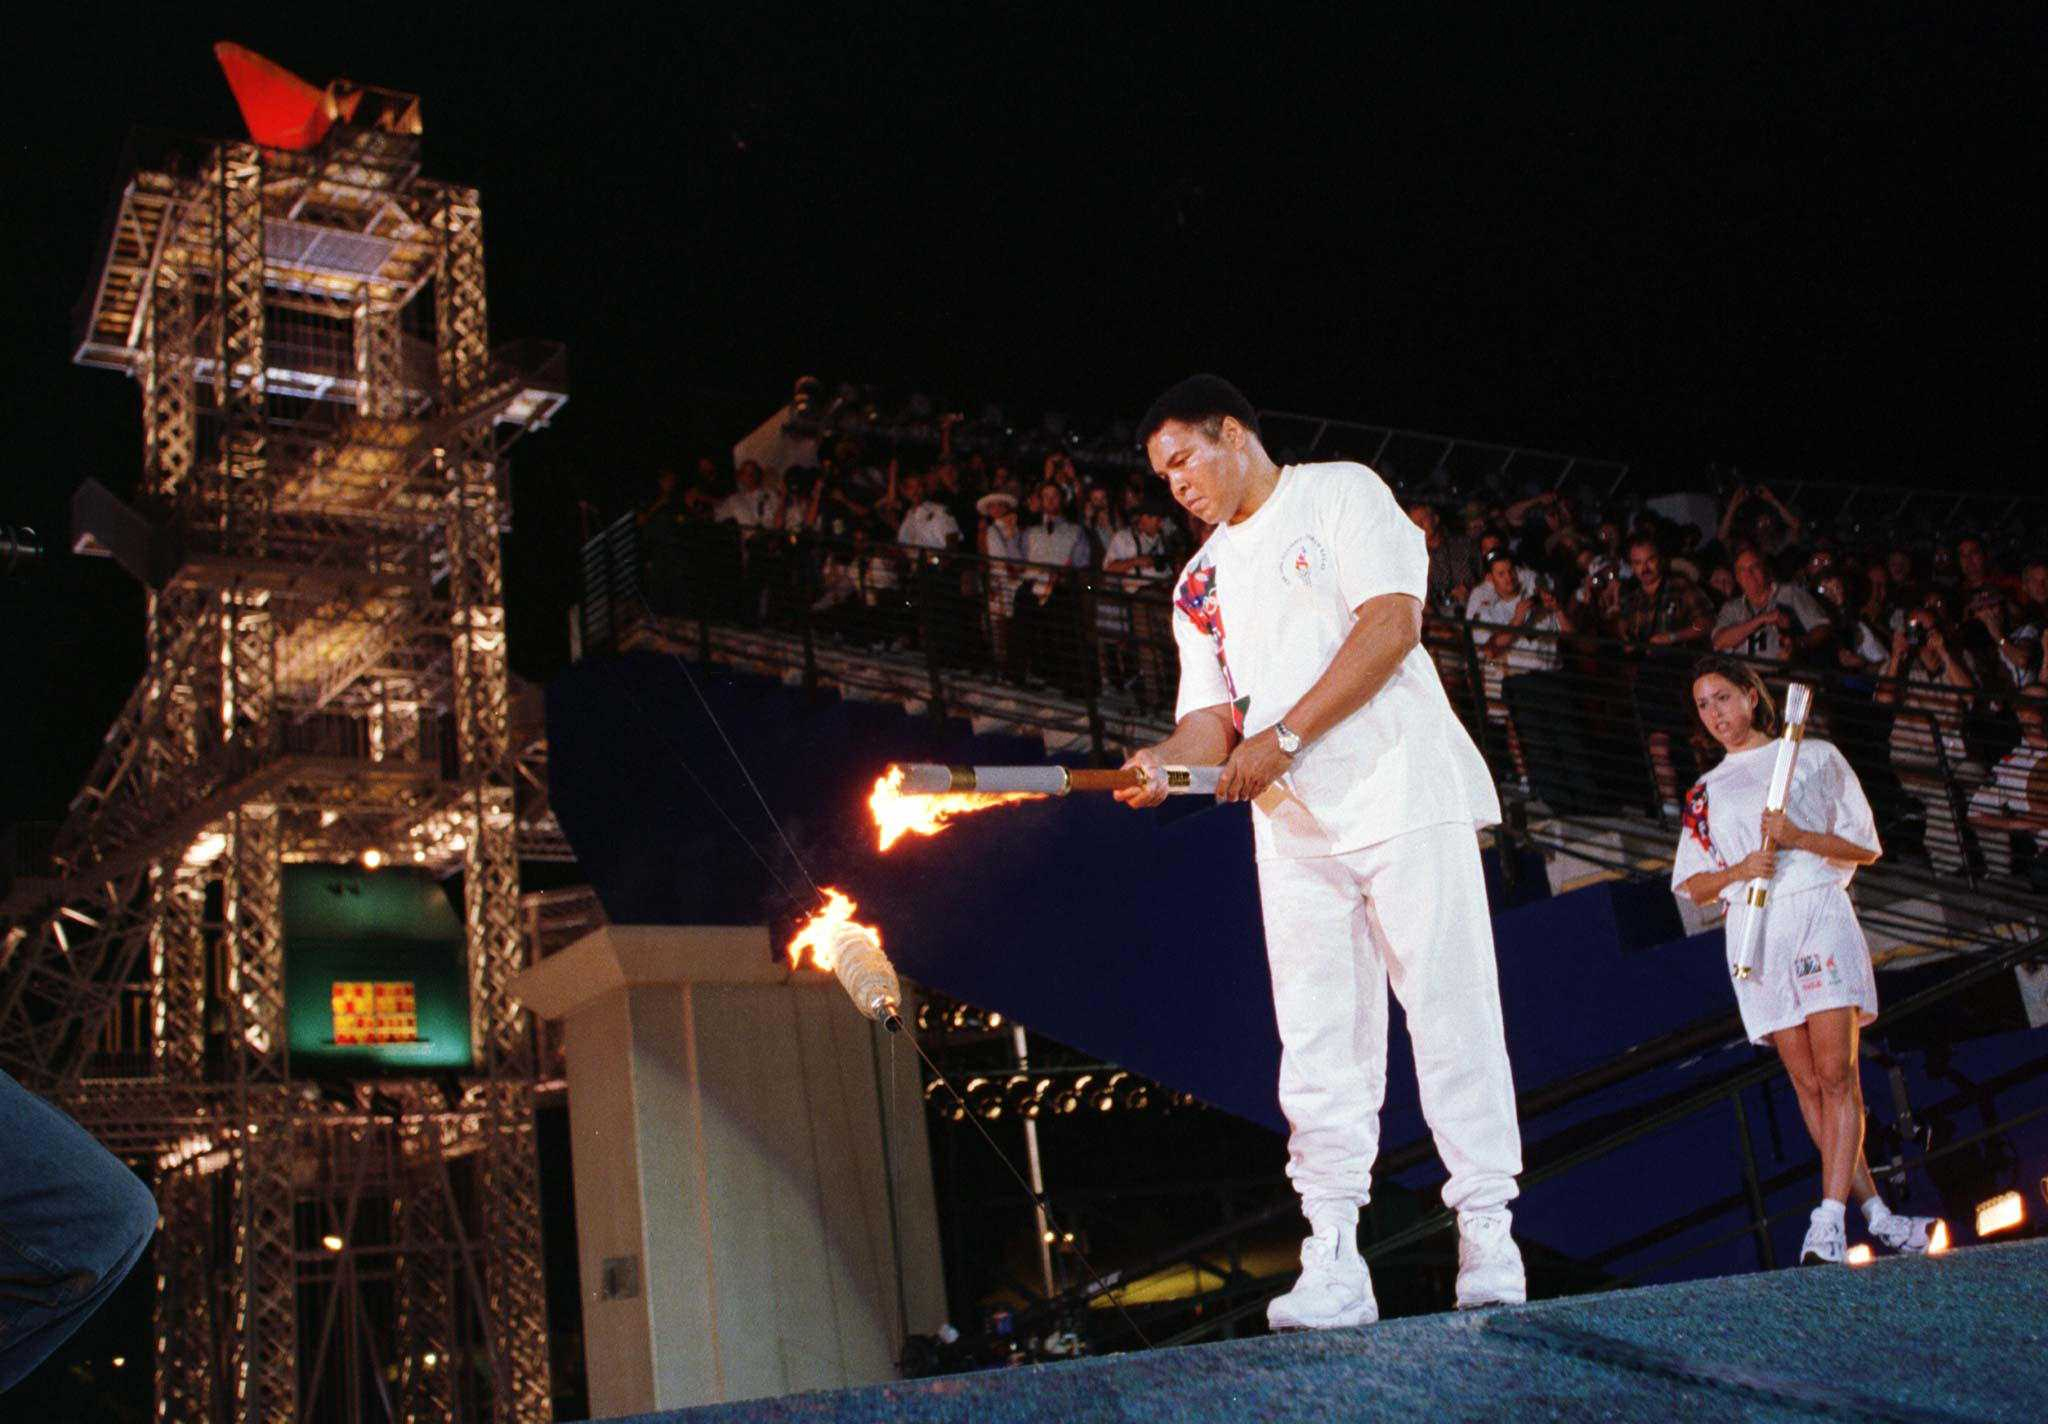 Muhammad Ali lights Olympic torch, 1996